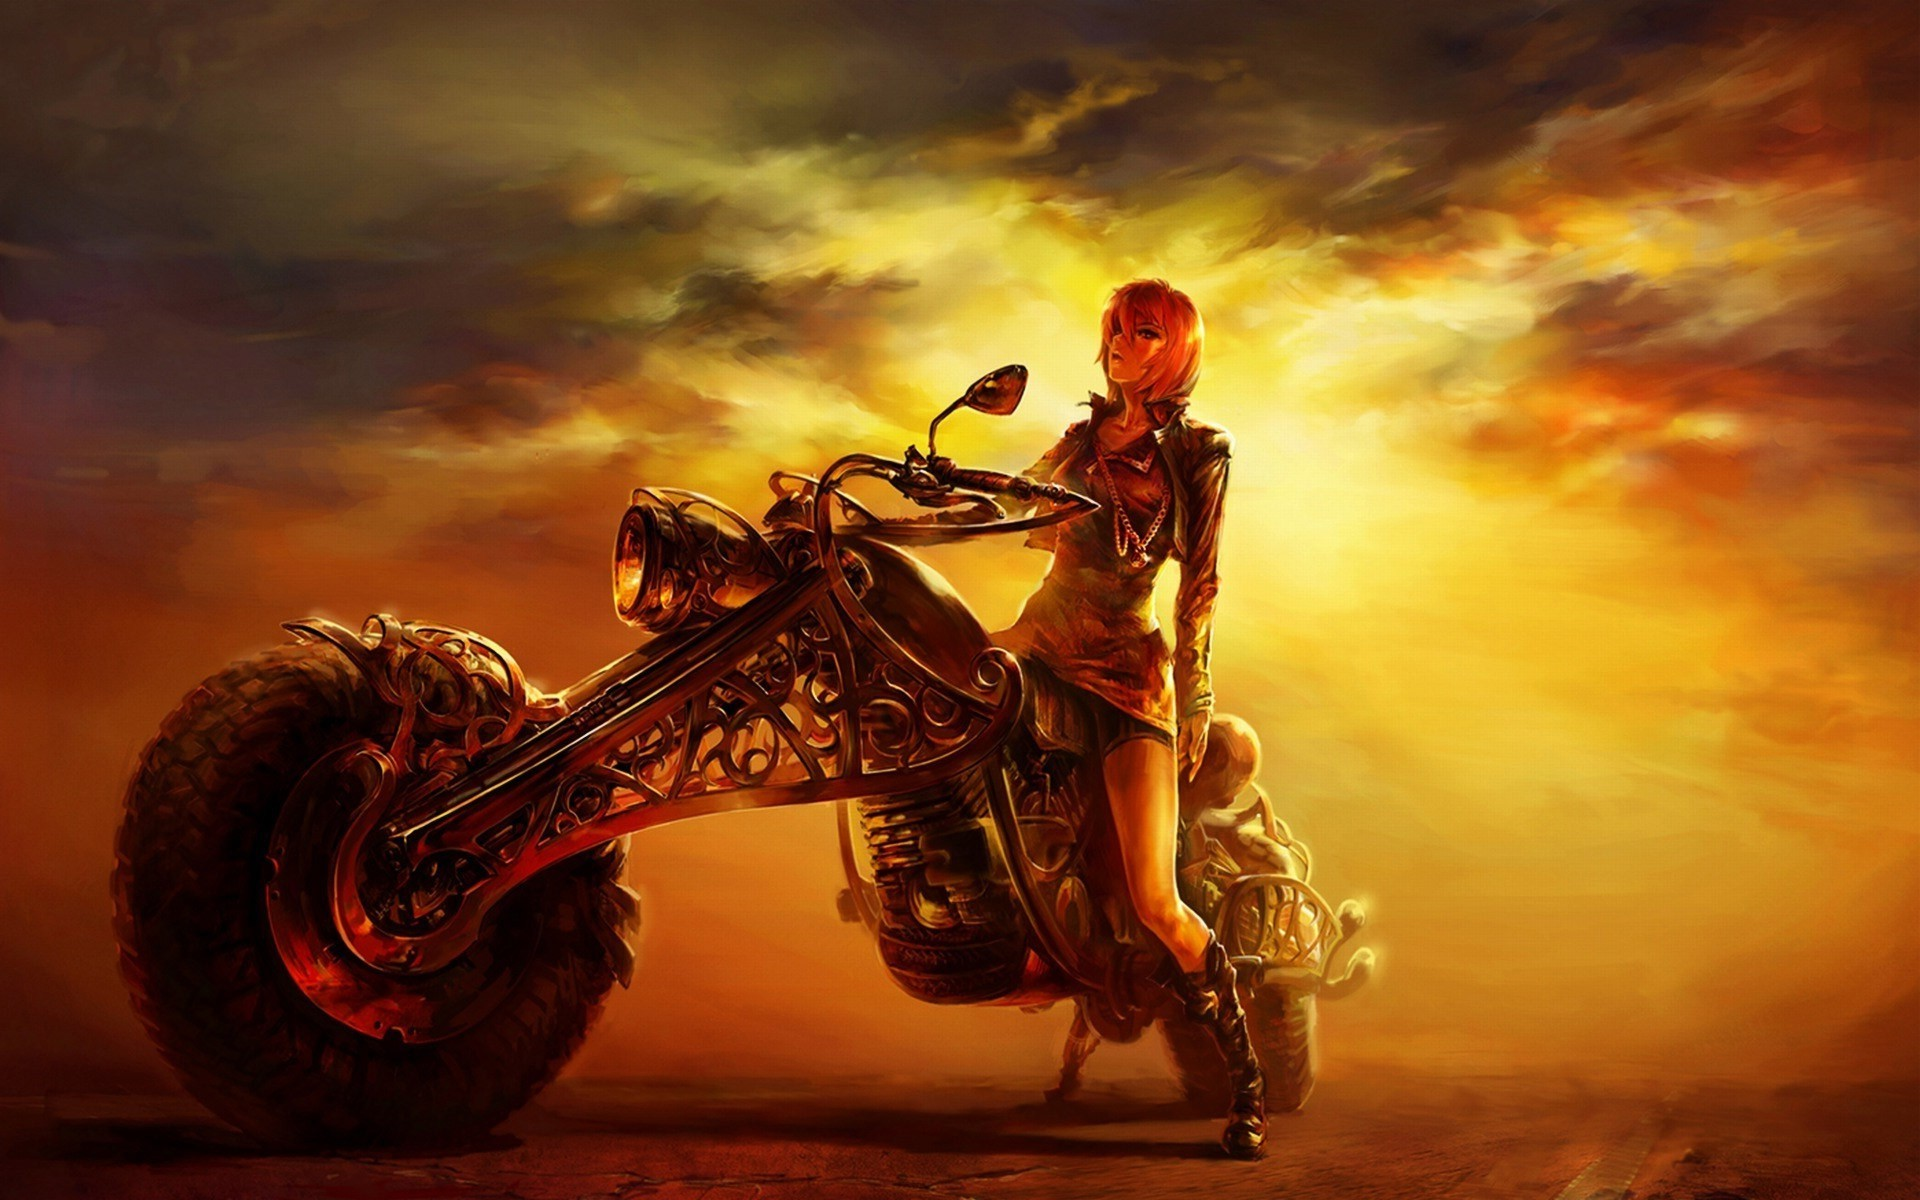 Motorcycle Girl Wallpaper  68  Images